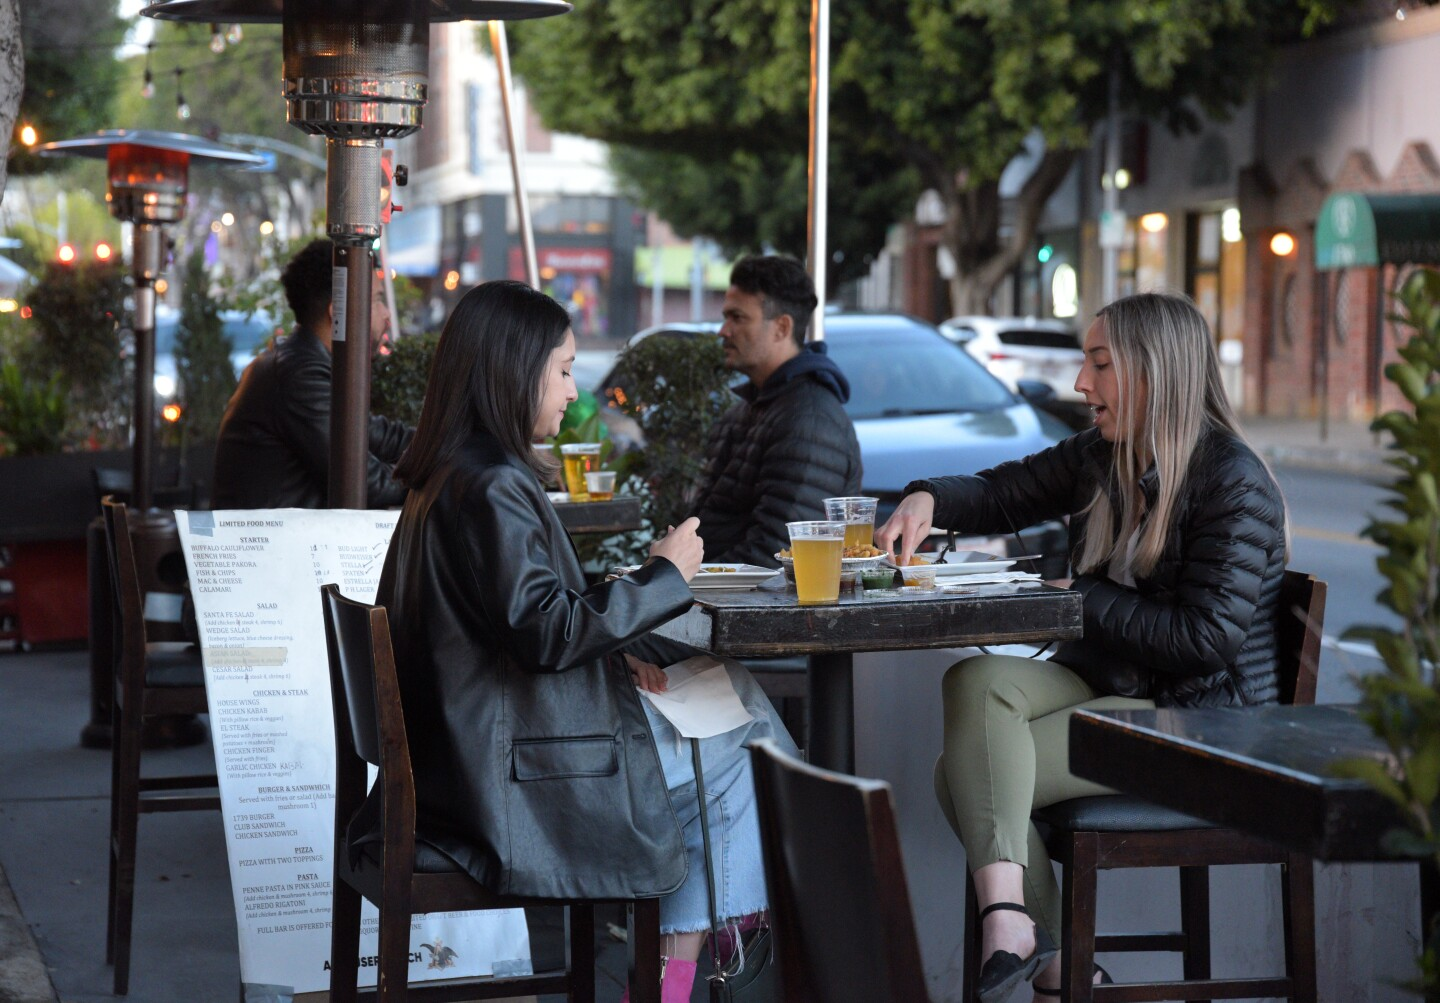 Diners eat dinner at a restaurant's outdoor tables on March 17, 2021 in Los Angeles, California.